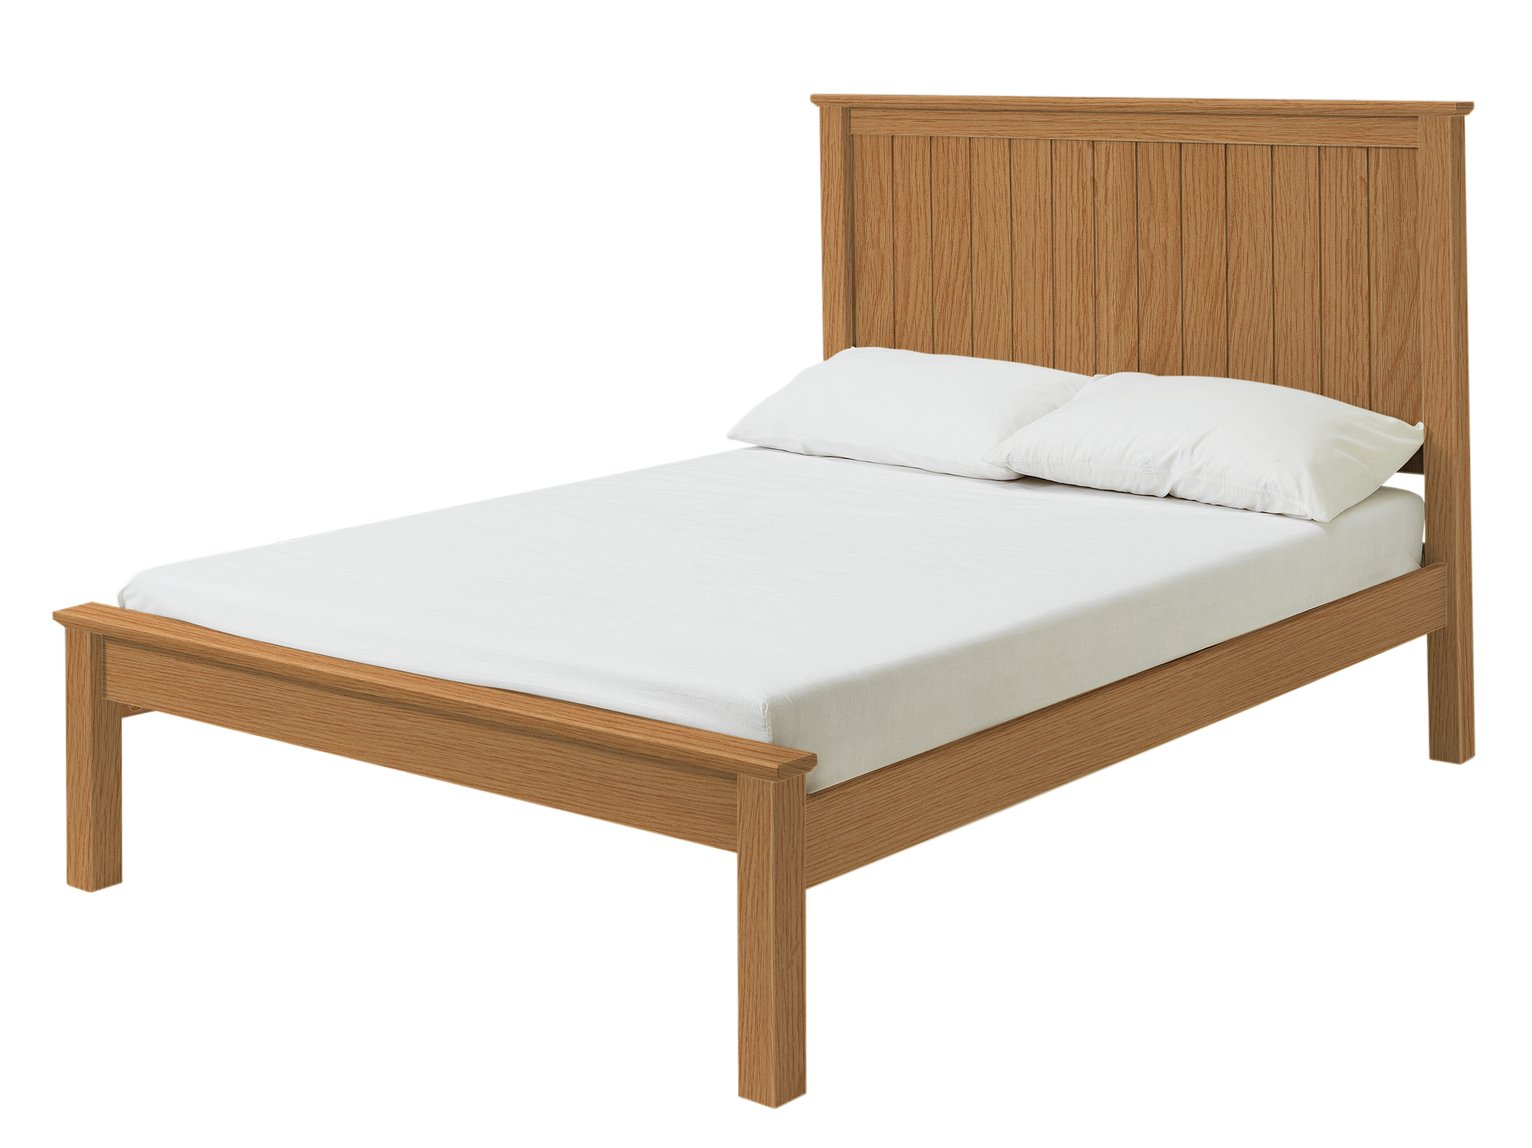 Argos Home Grafton Double Bed Frame review